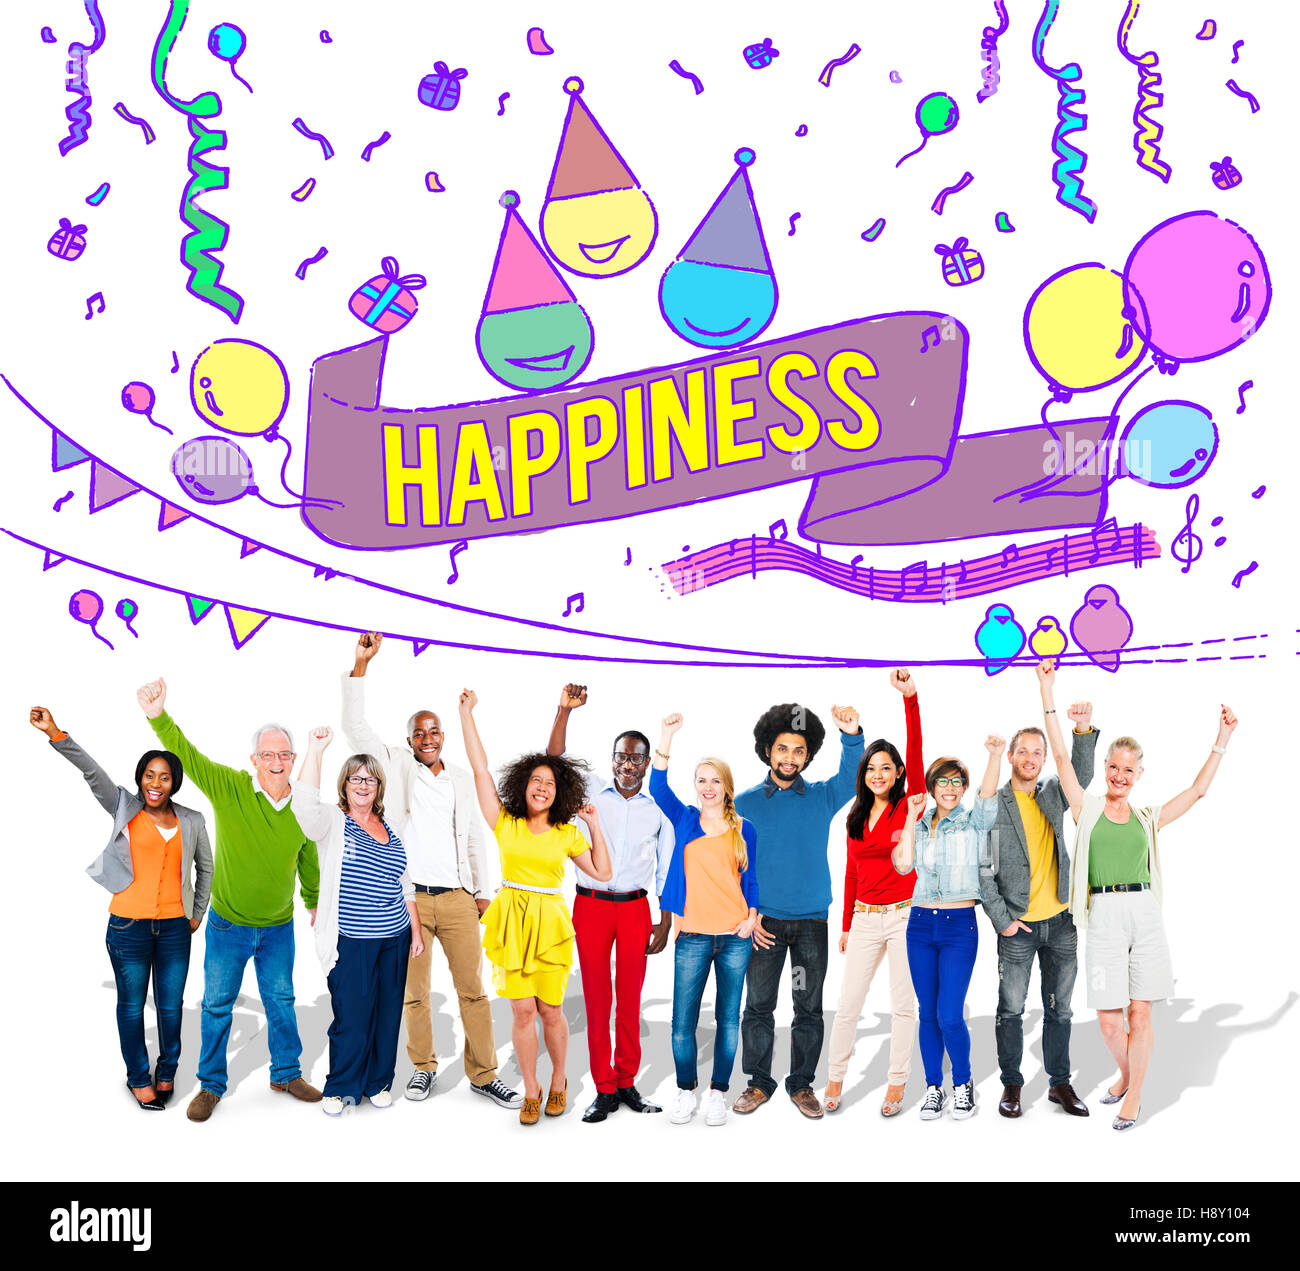 Happiness Enjoy Fun Jolly Festive Concept - Stock Image